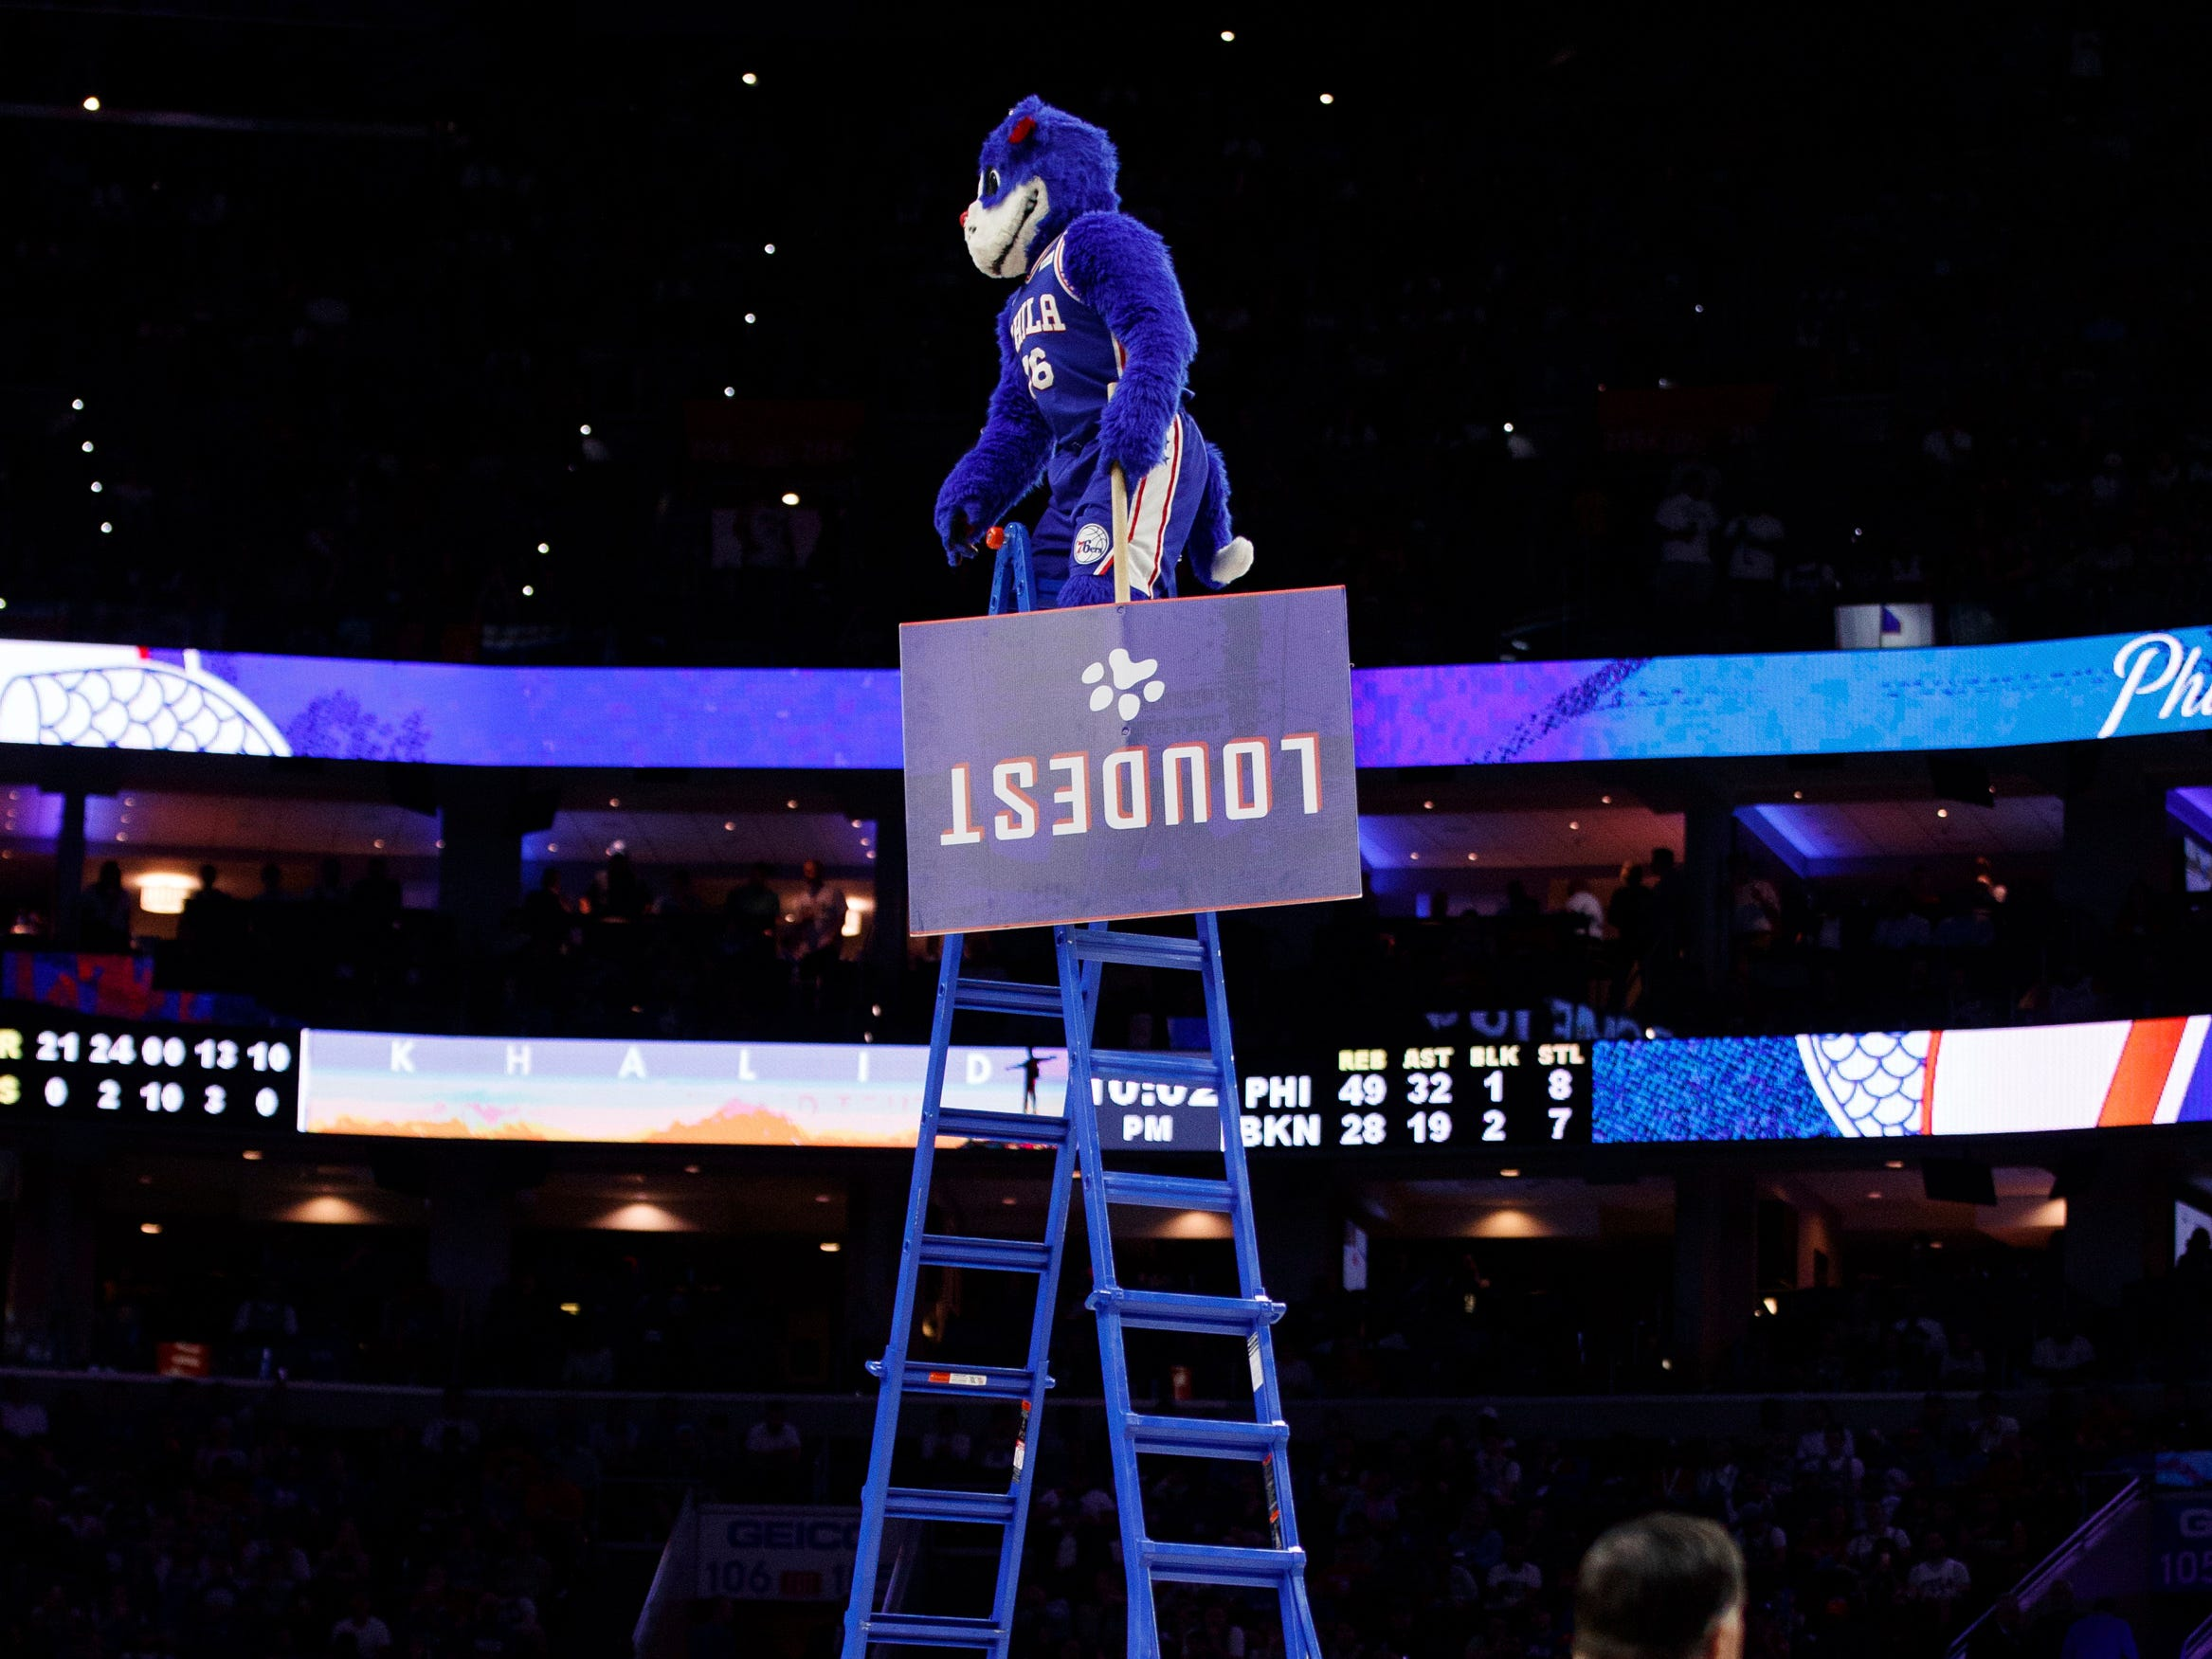 April 23: 76ers mascot Franklin climbs a very tall ladder to get the crowd excited during Game 5.